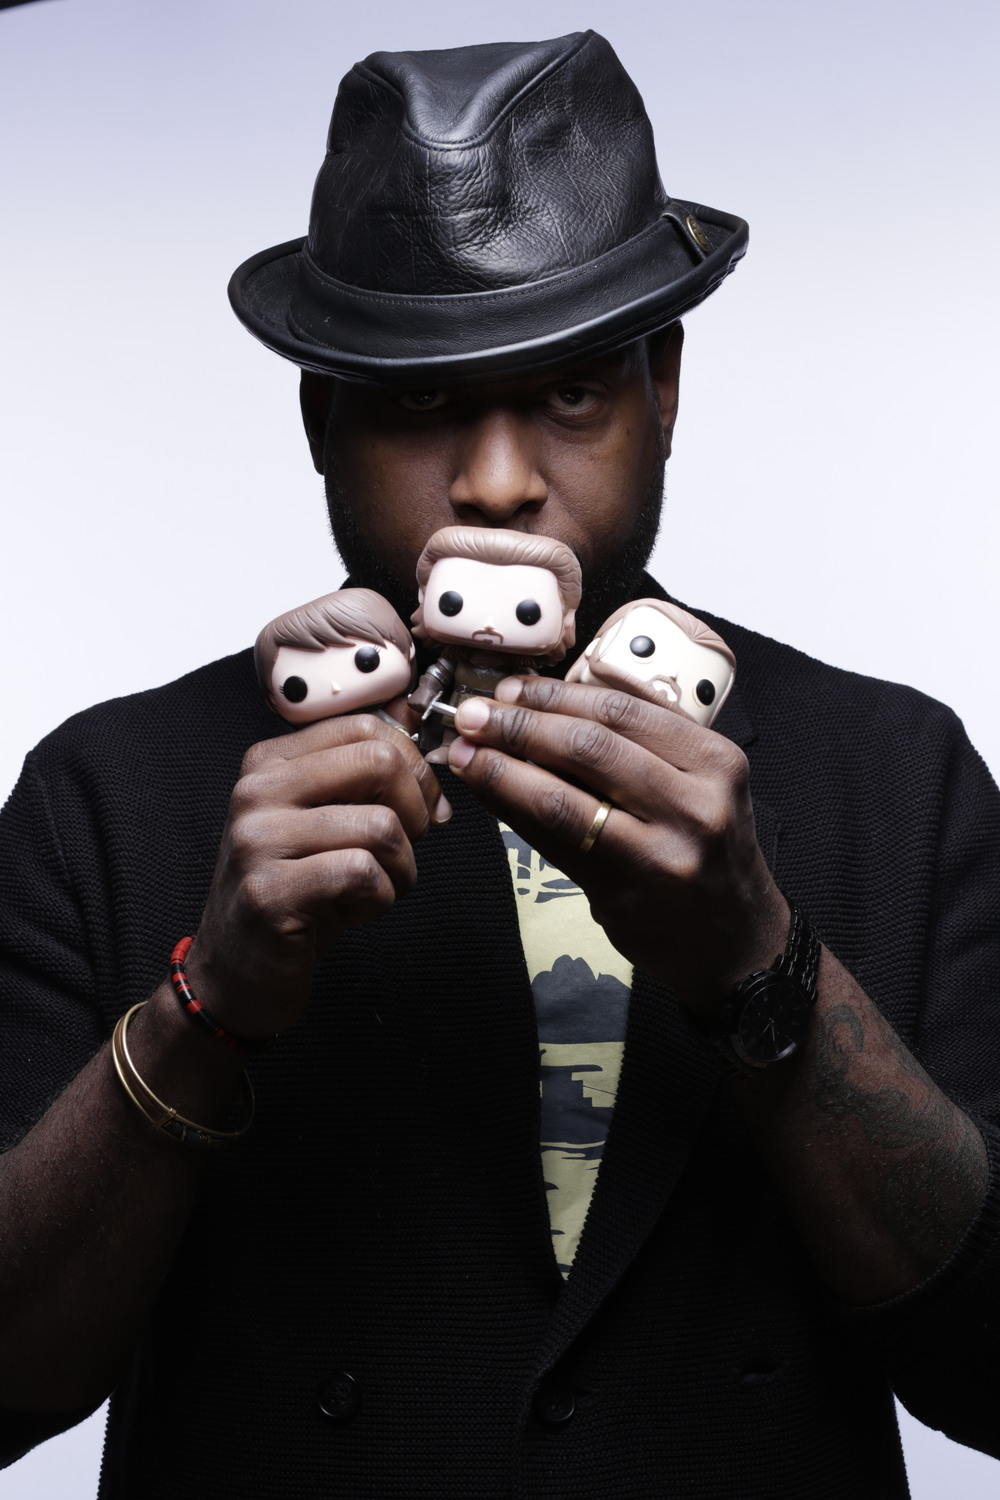 Talib Kweli poses with the GOT Funko dolls.